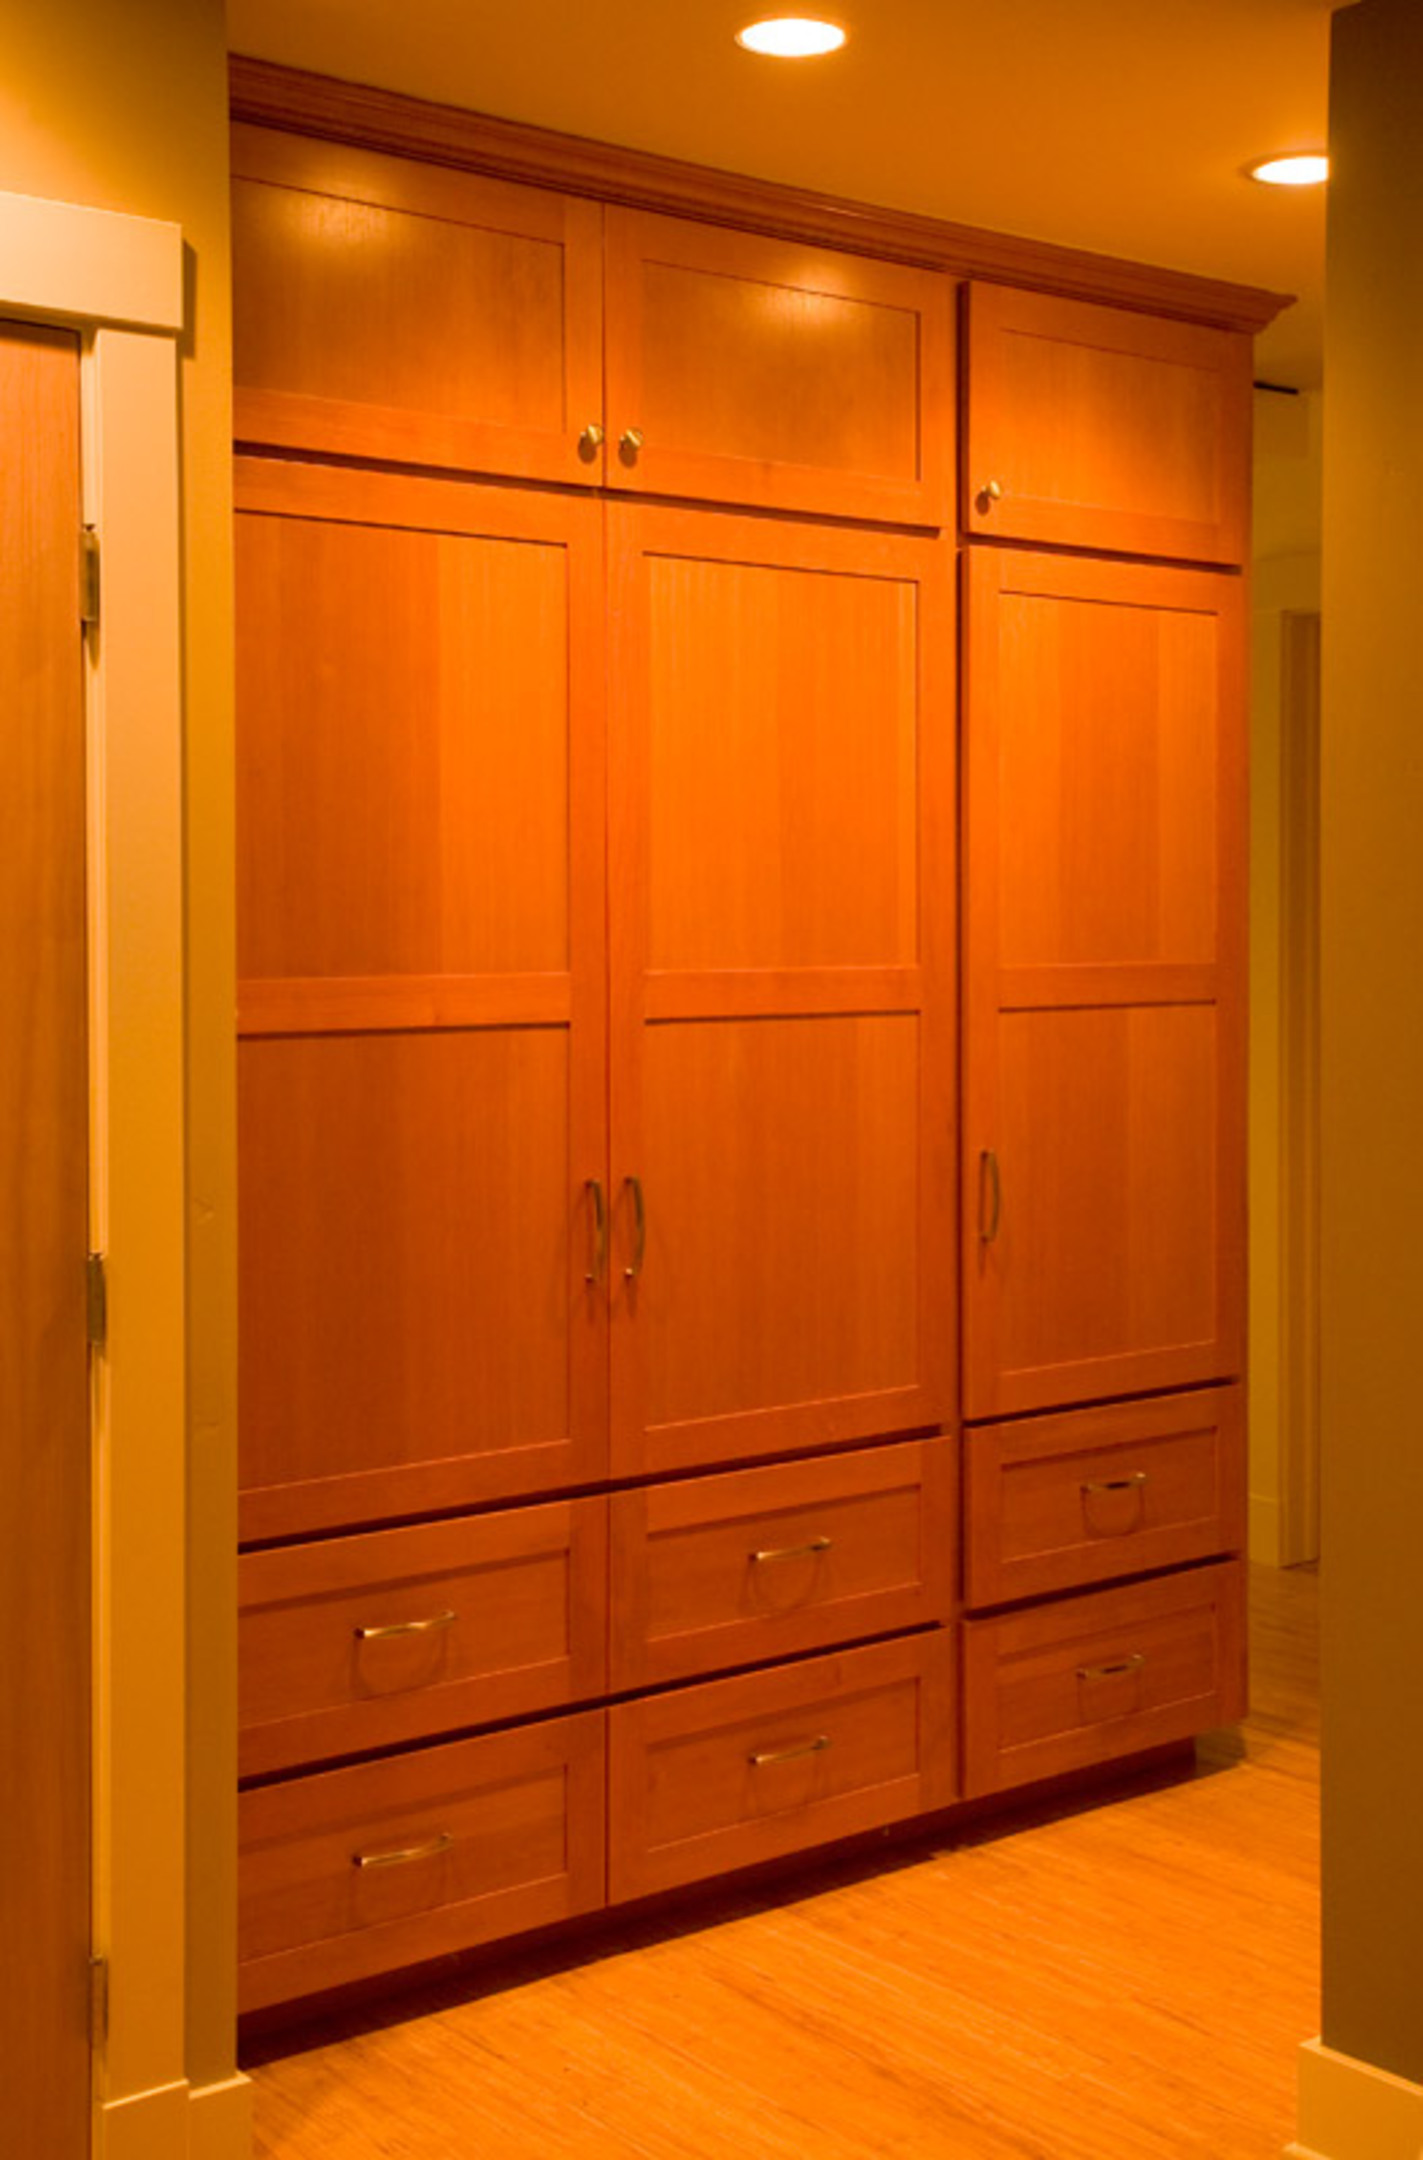 hickory shaker style kitchen cabinets green furniture affordable custom - showroom